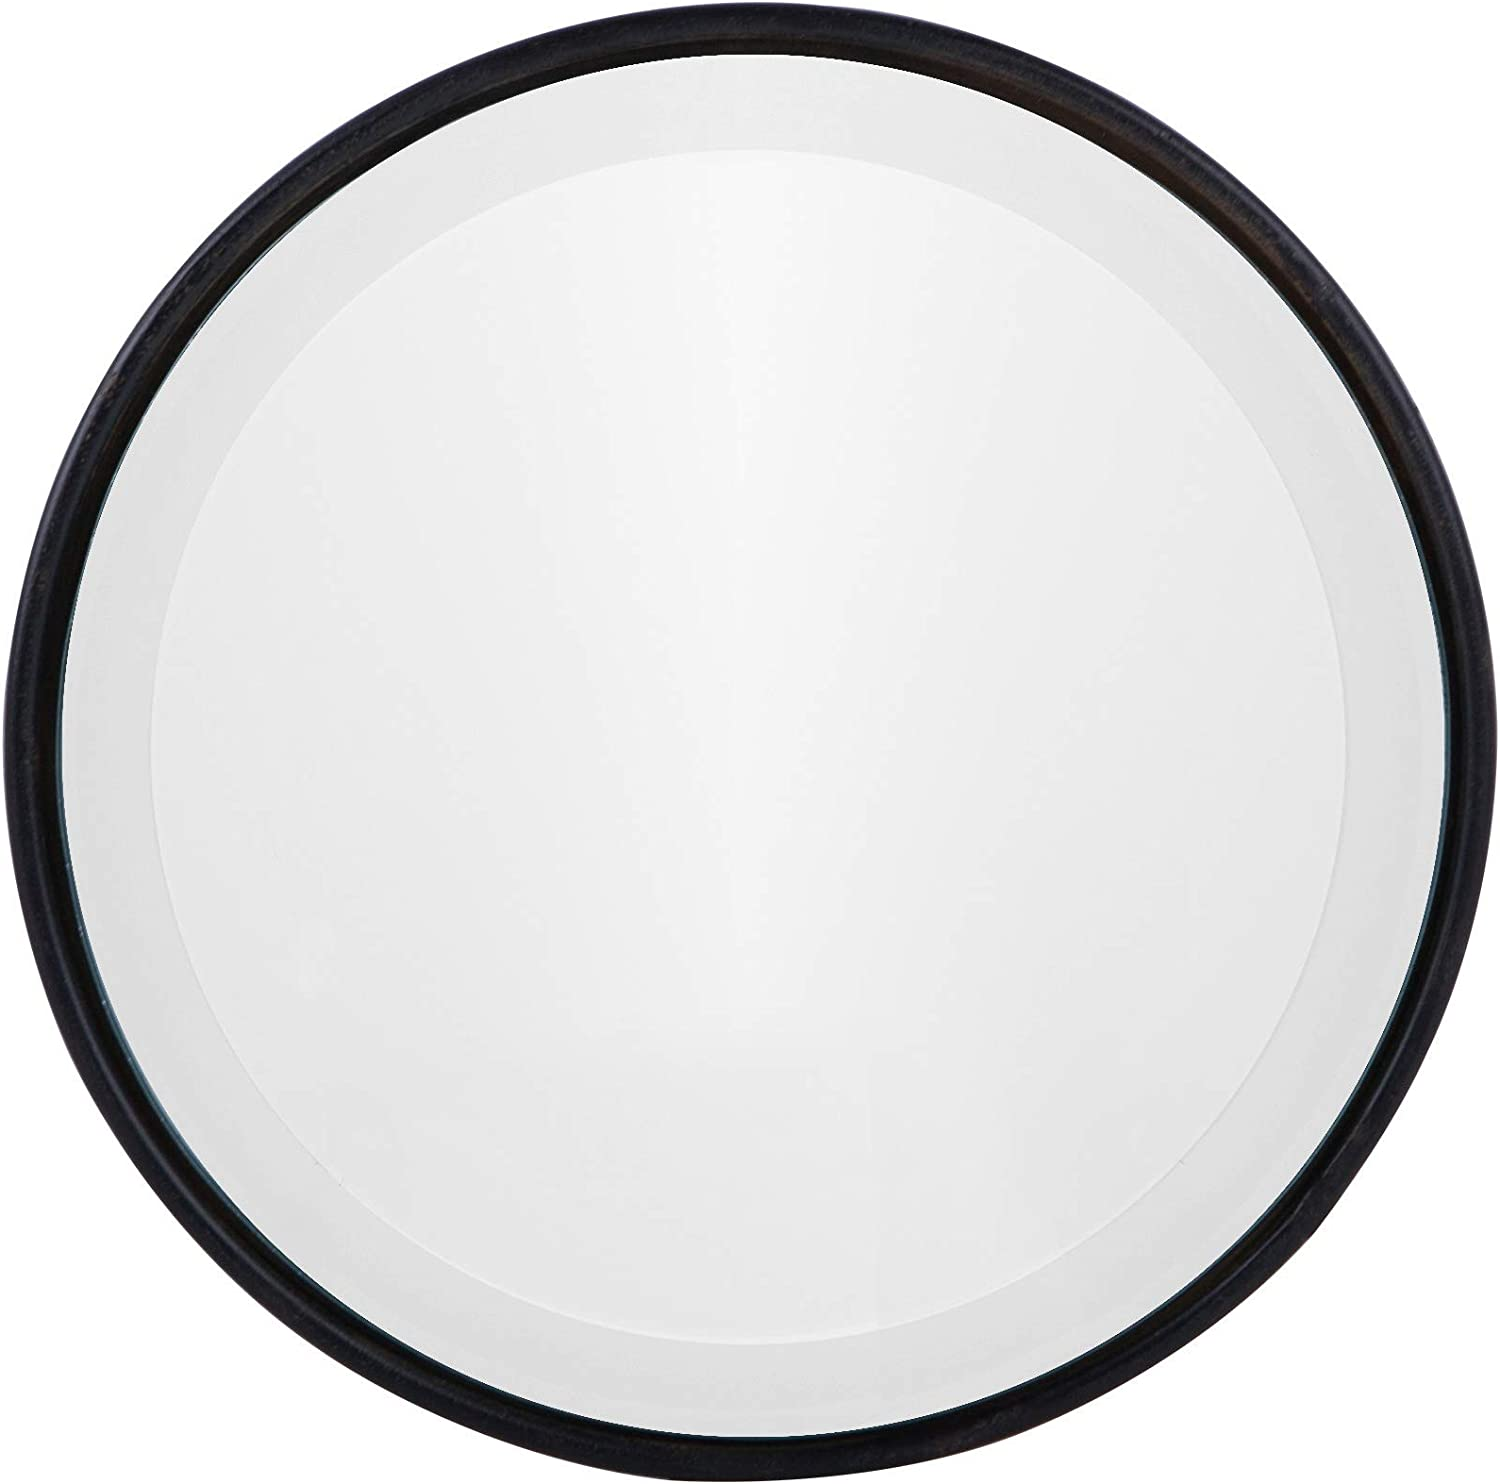 "NIKKY HOME 8"" Vintage Small Decorative Metal Round Wall Mirror Beveled Edge, Black"